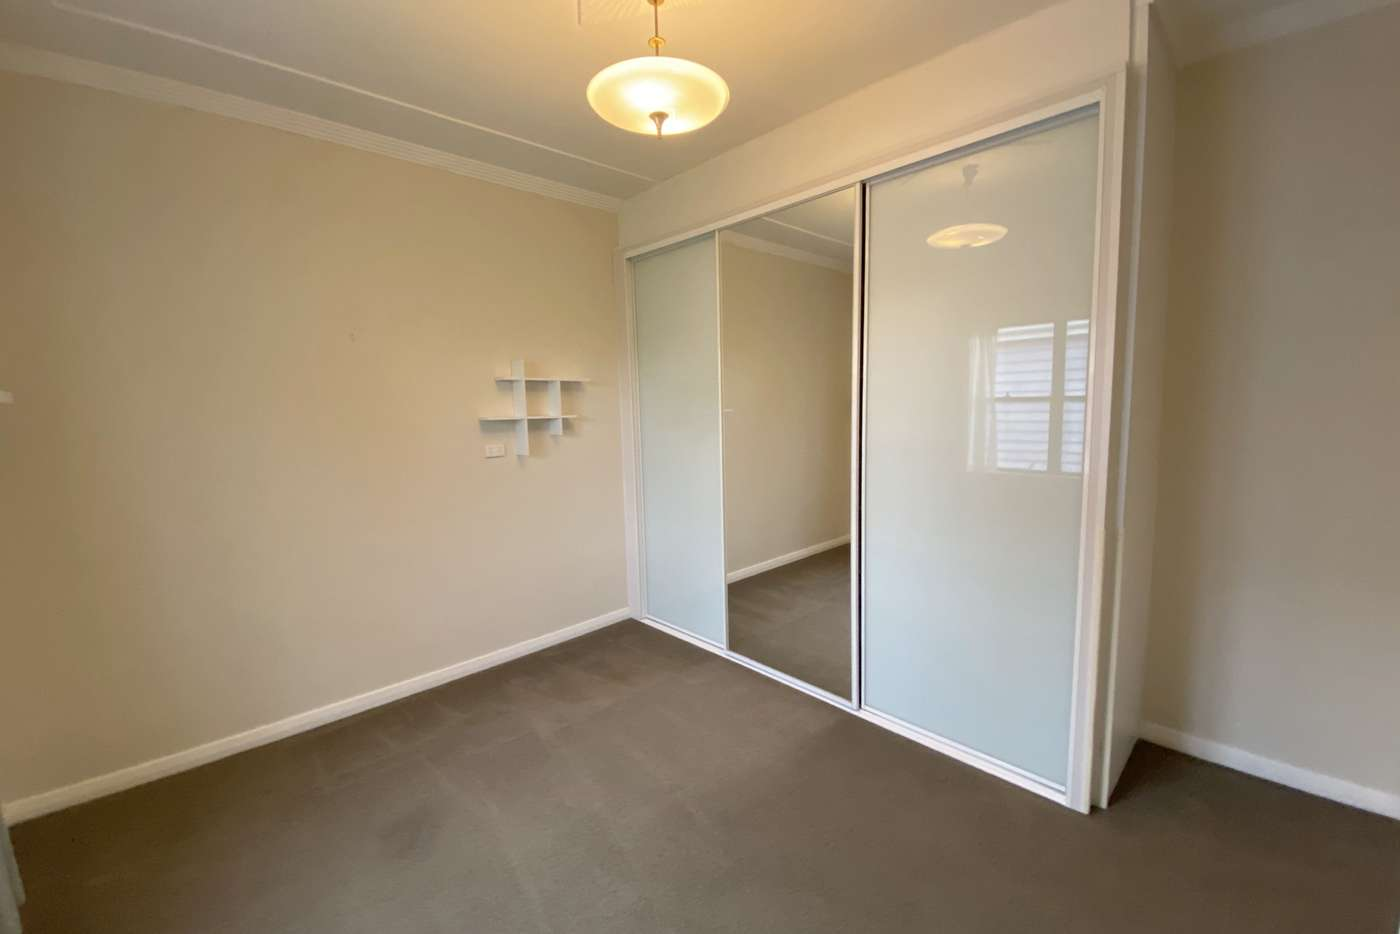 Sixth view of Homely house listing, 32 Lee Crescent, Birmingham Gardens NSW 2287